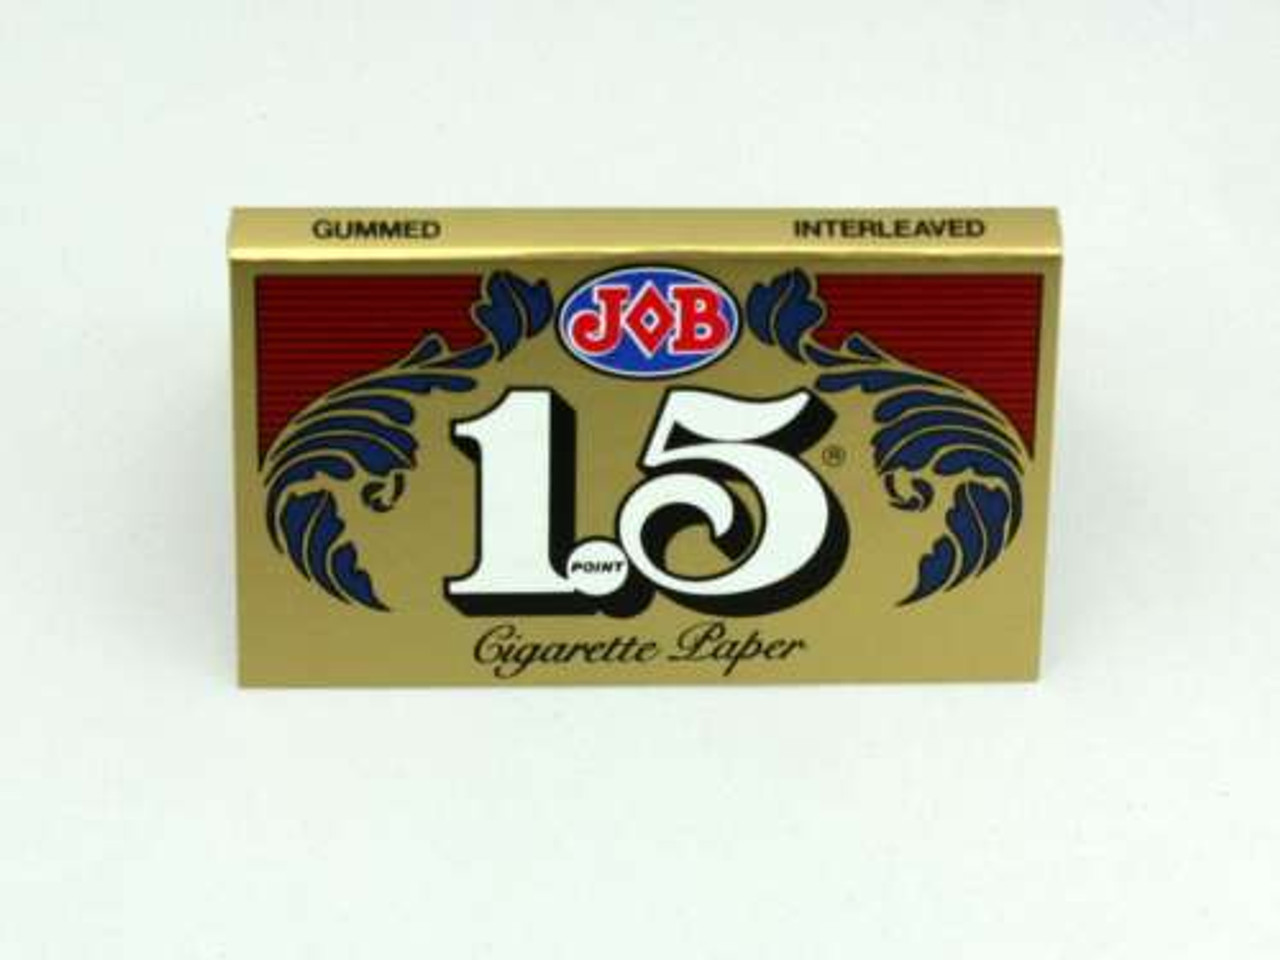 JOB 1.5 Gold Rolling Papers